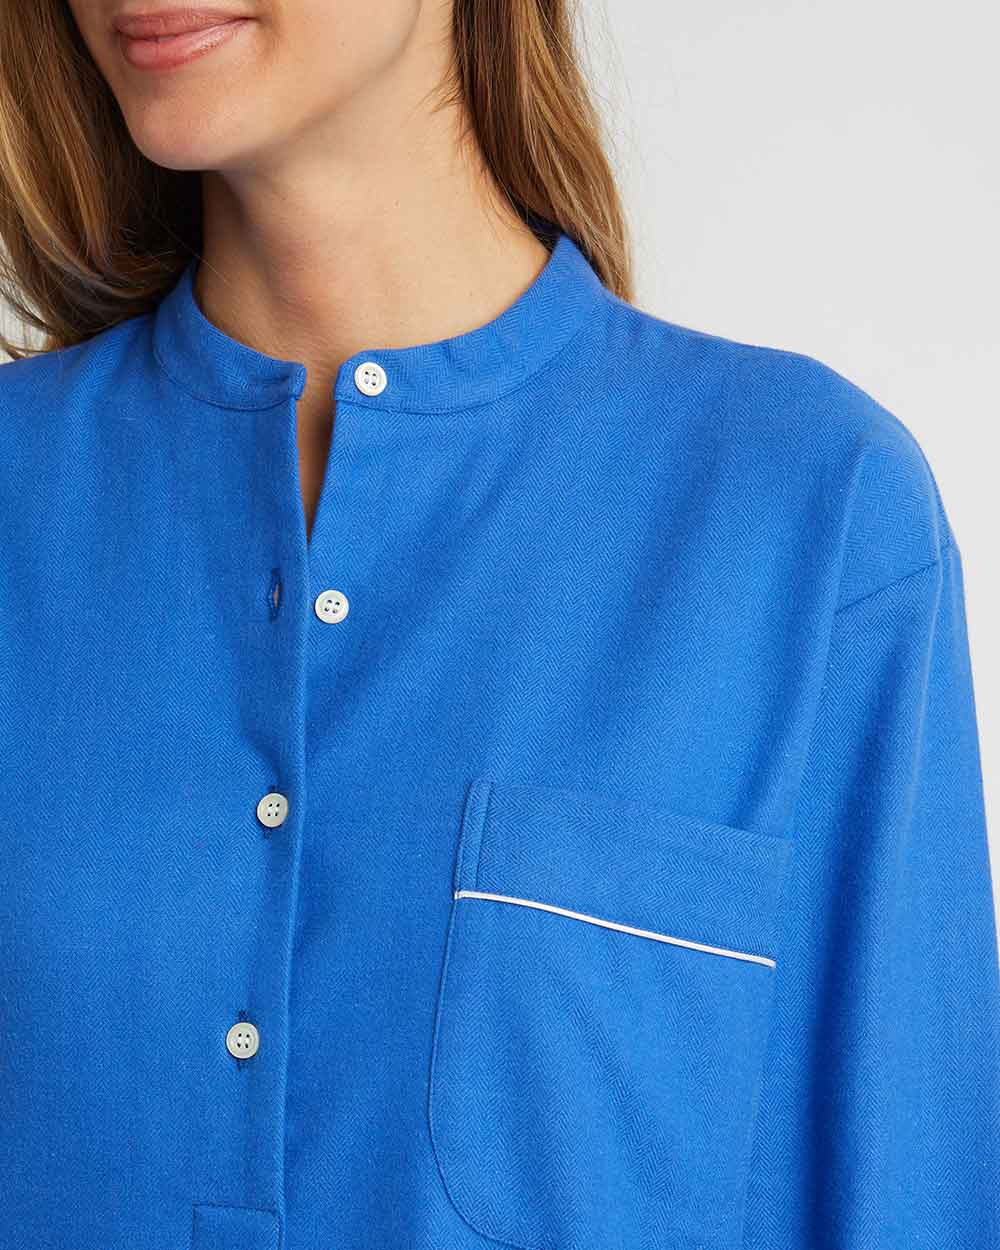 Women's Brushed Cotton Grandad Nightshirt - Bright Blue